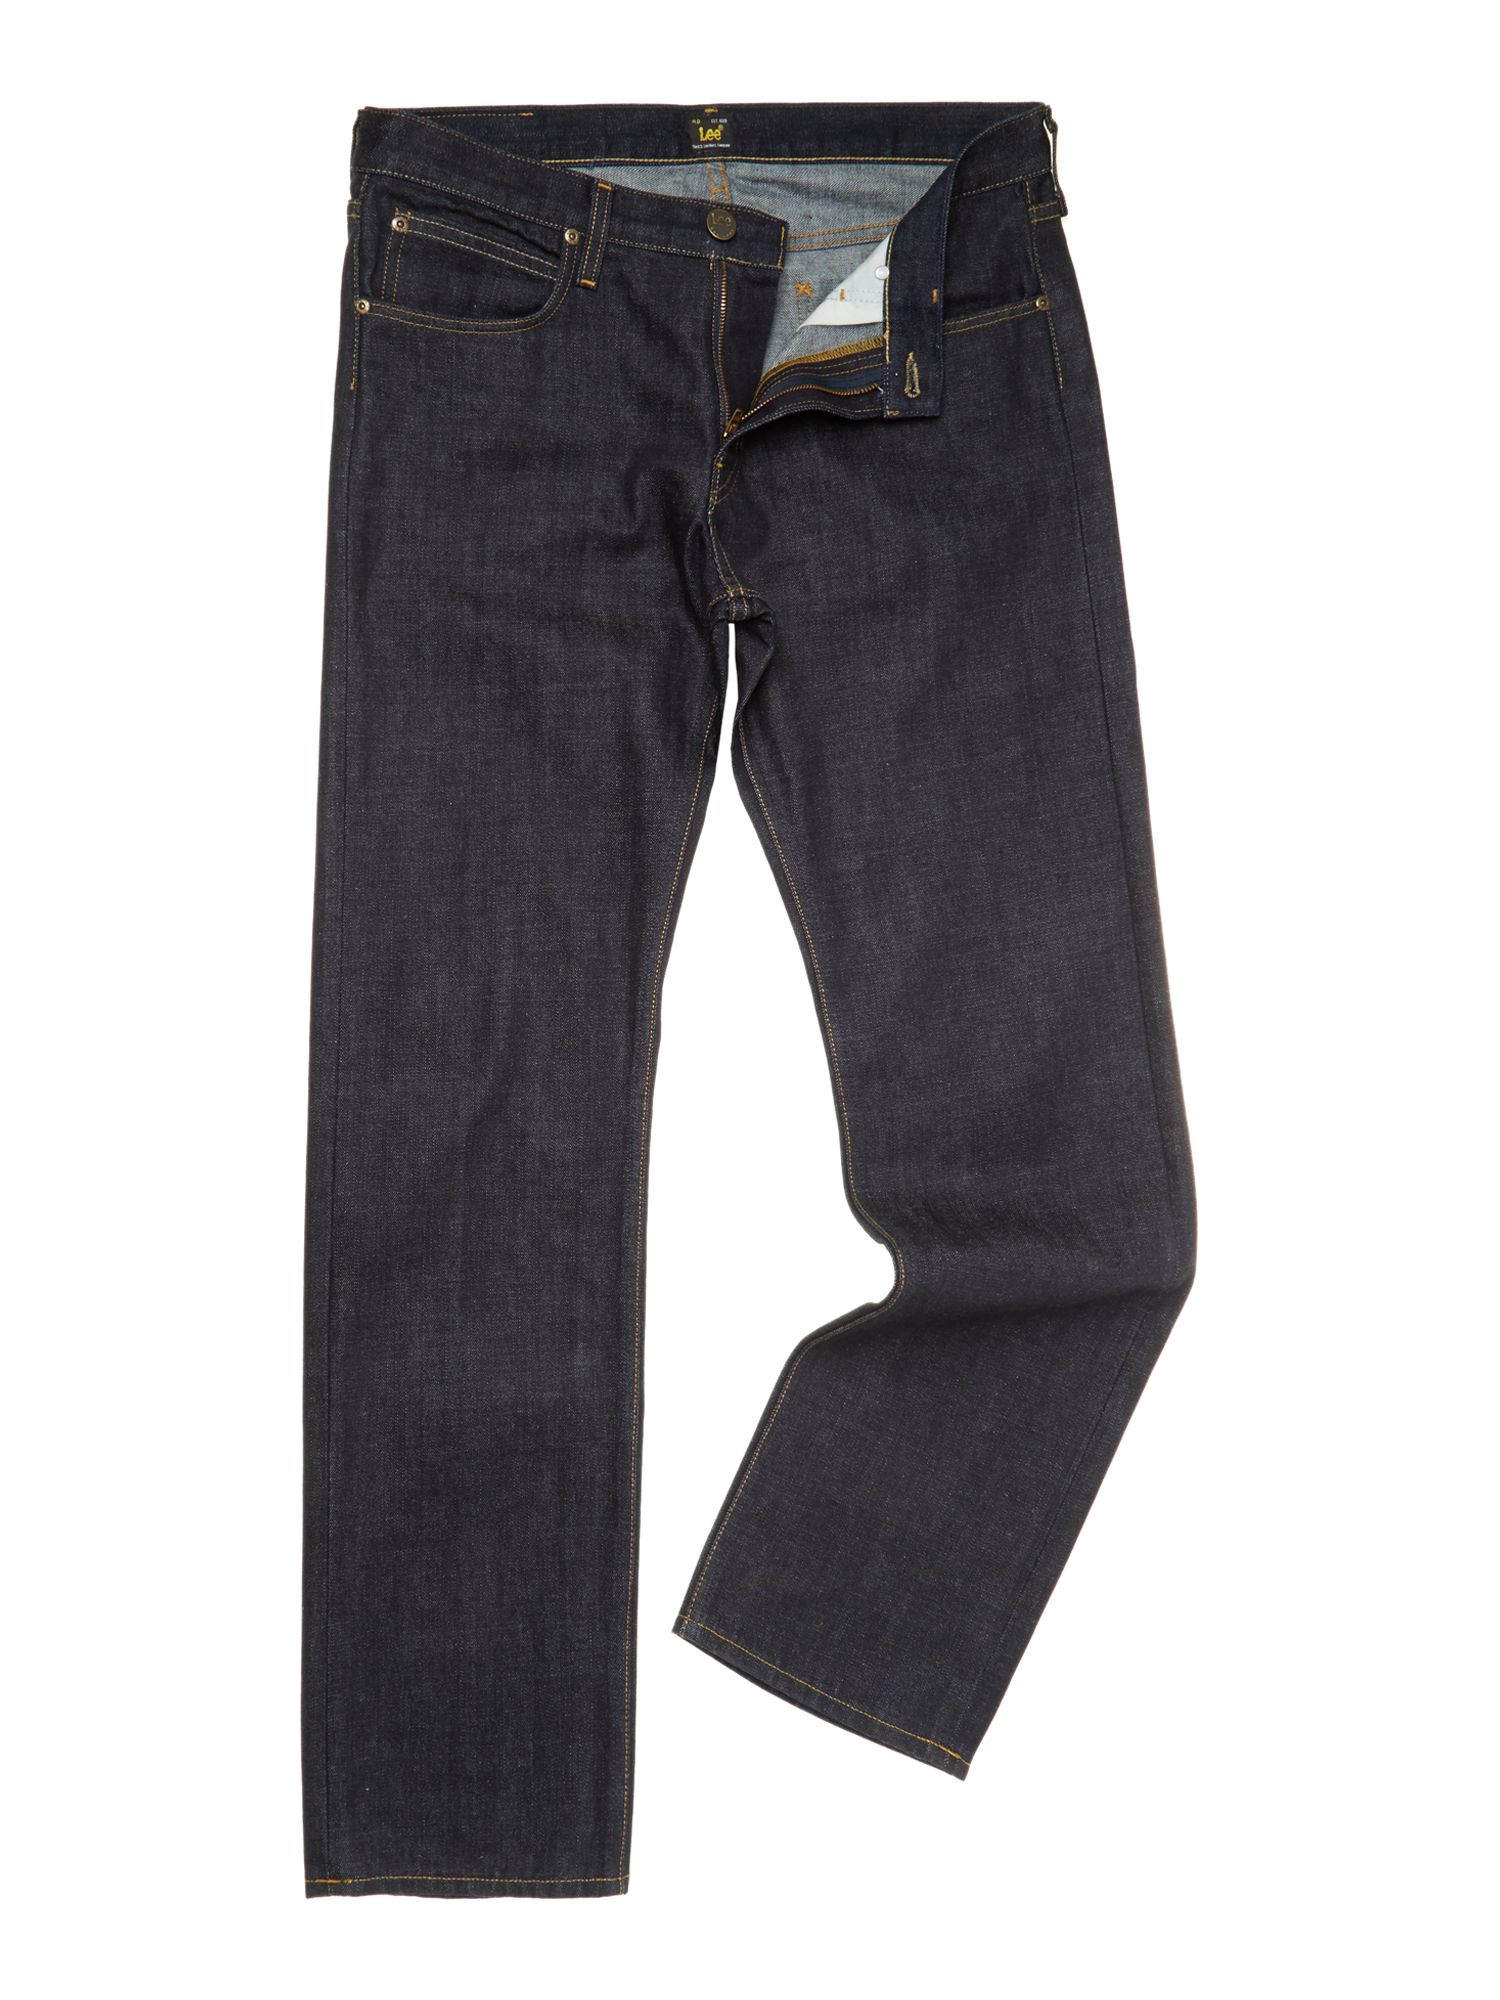 Blake regular fit rinse jeans